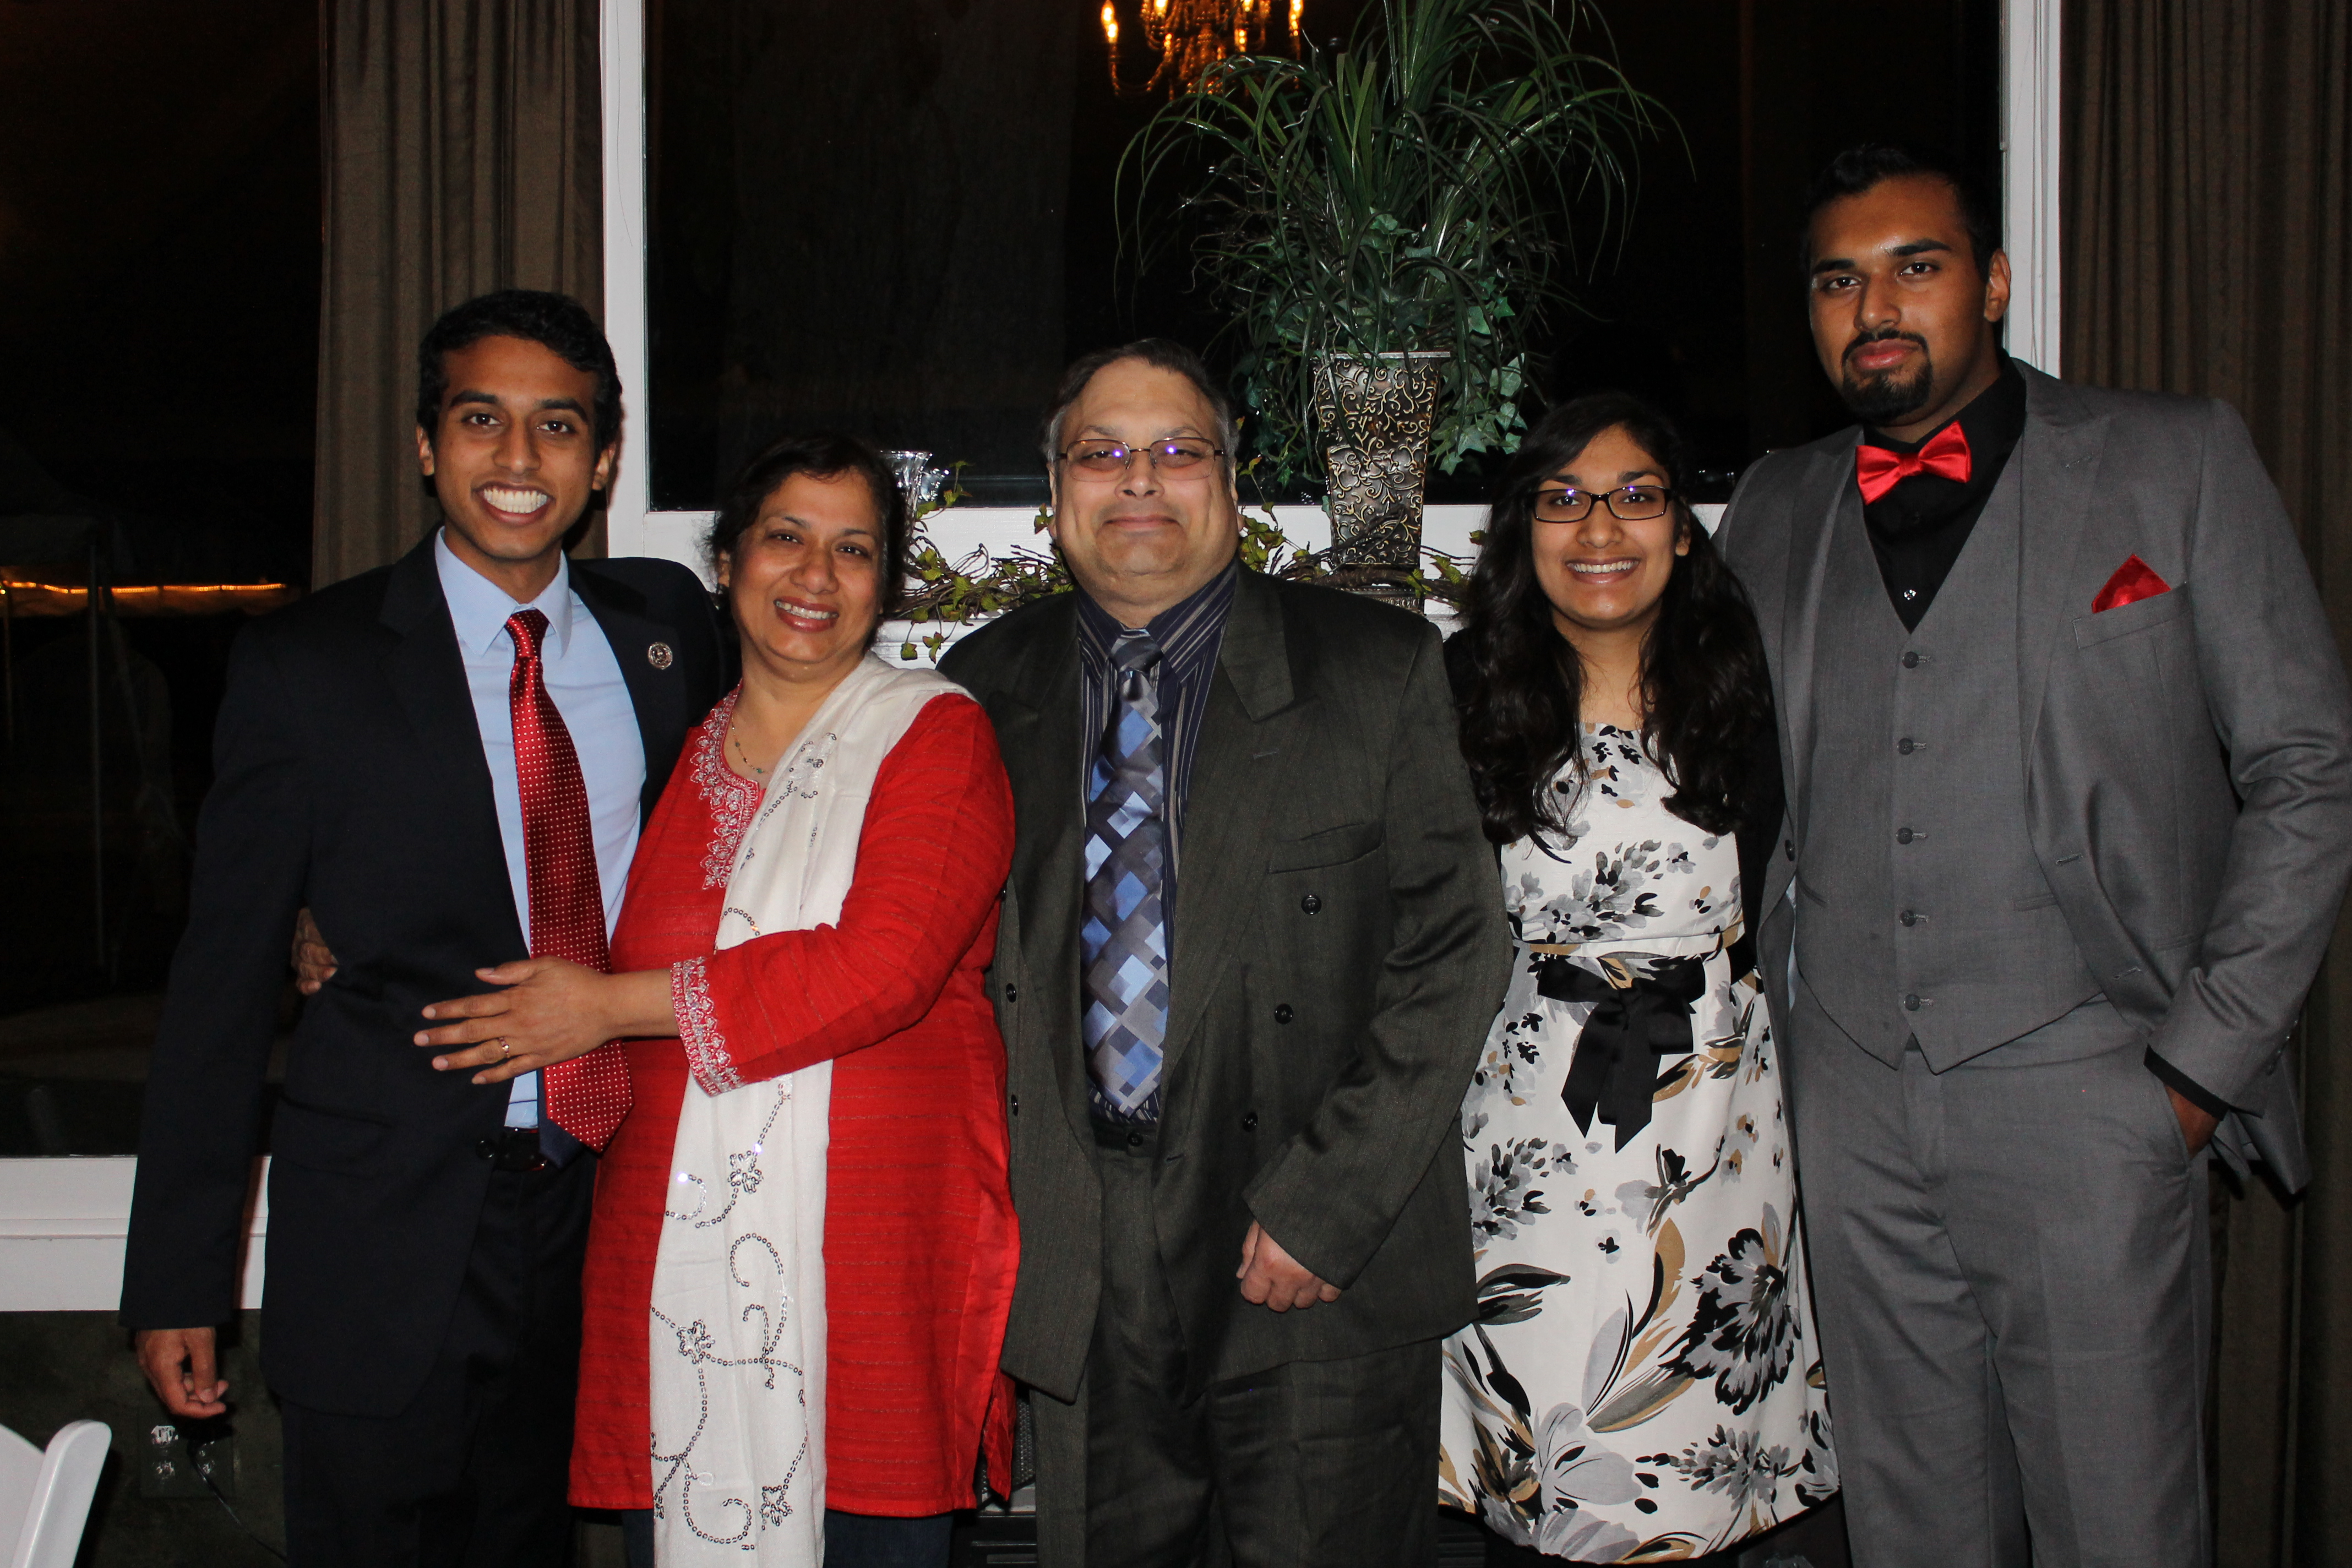 The Akhtar Family